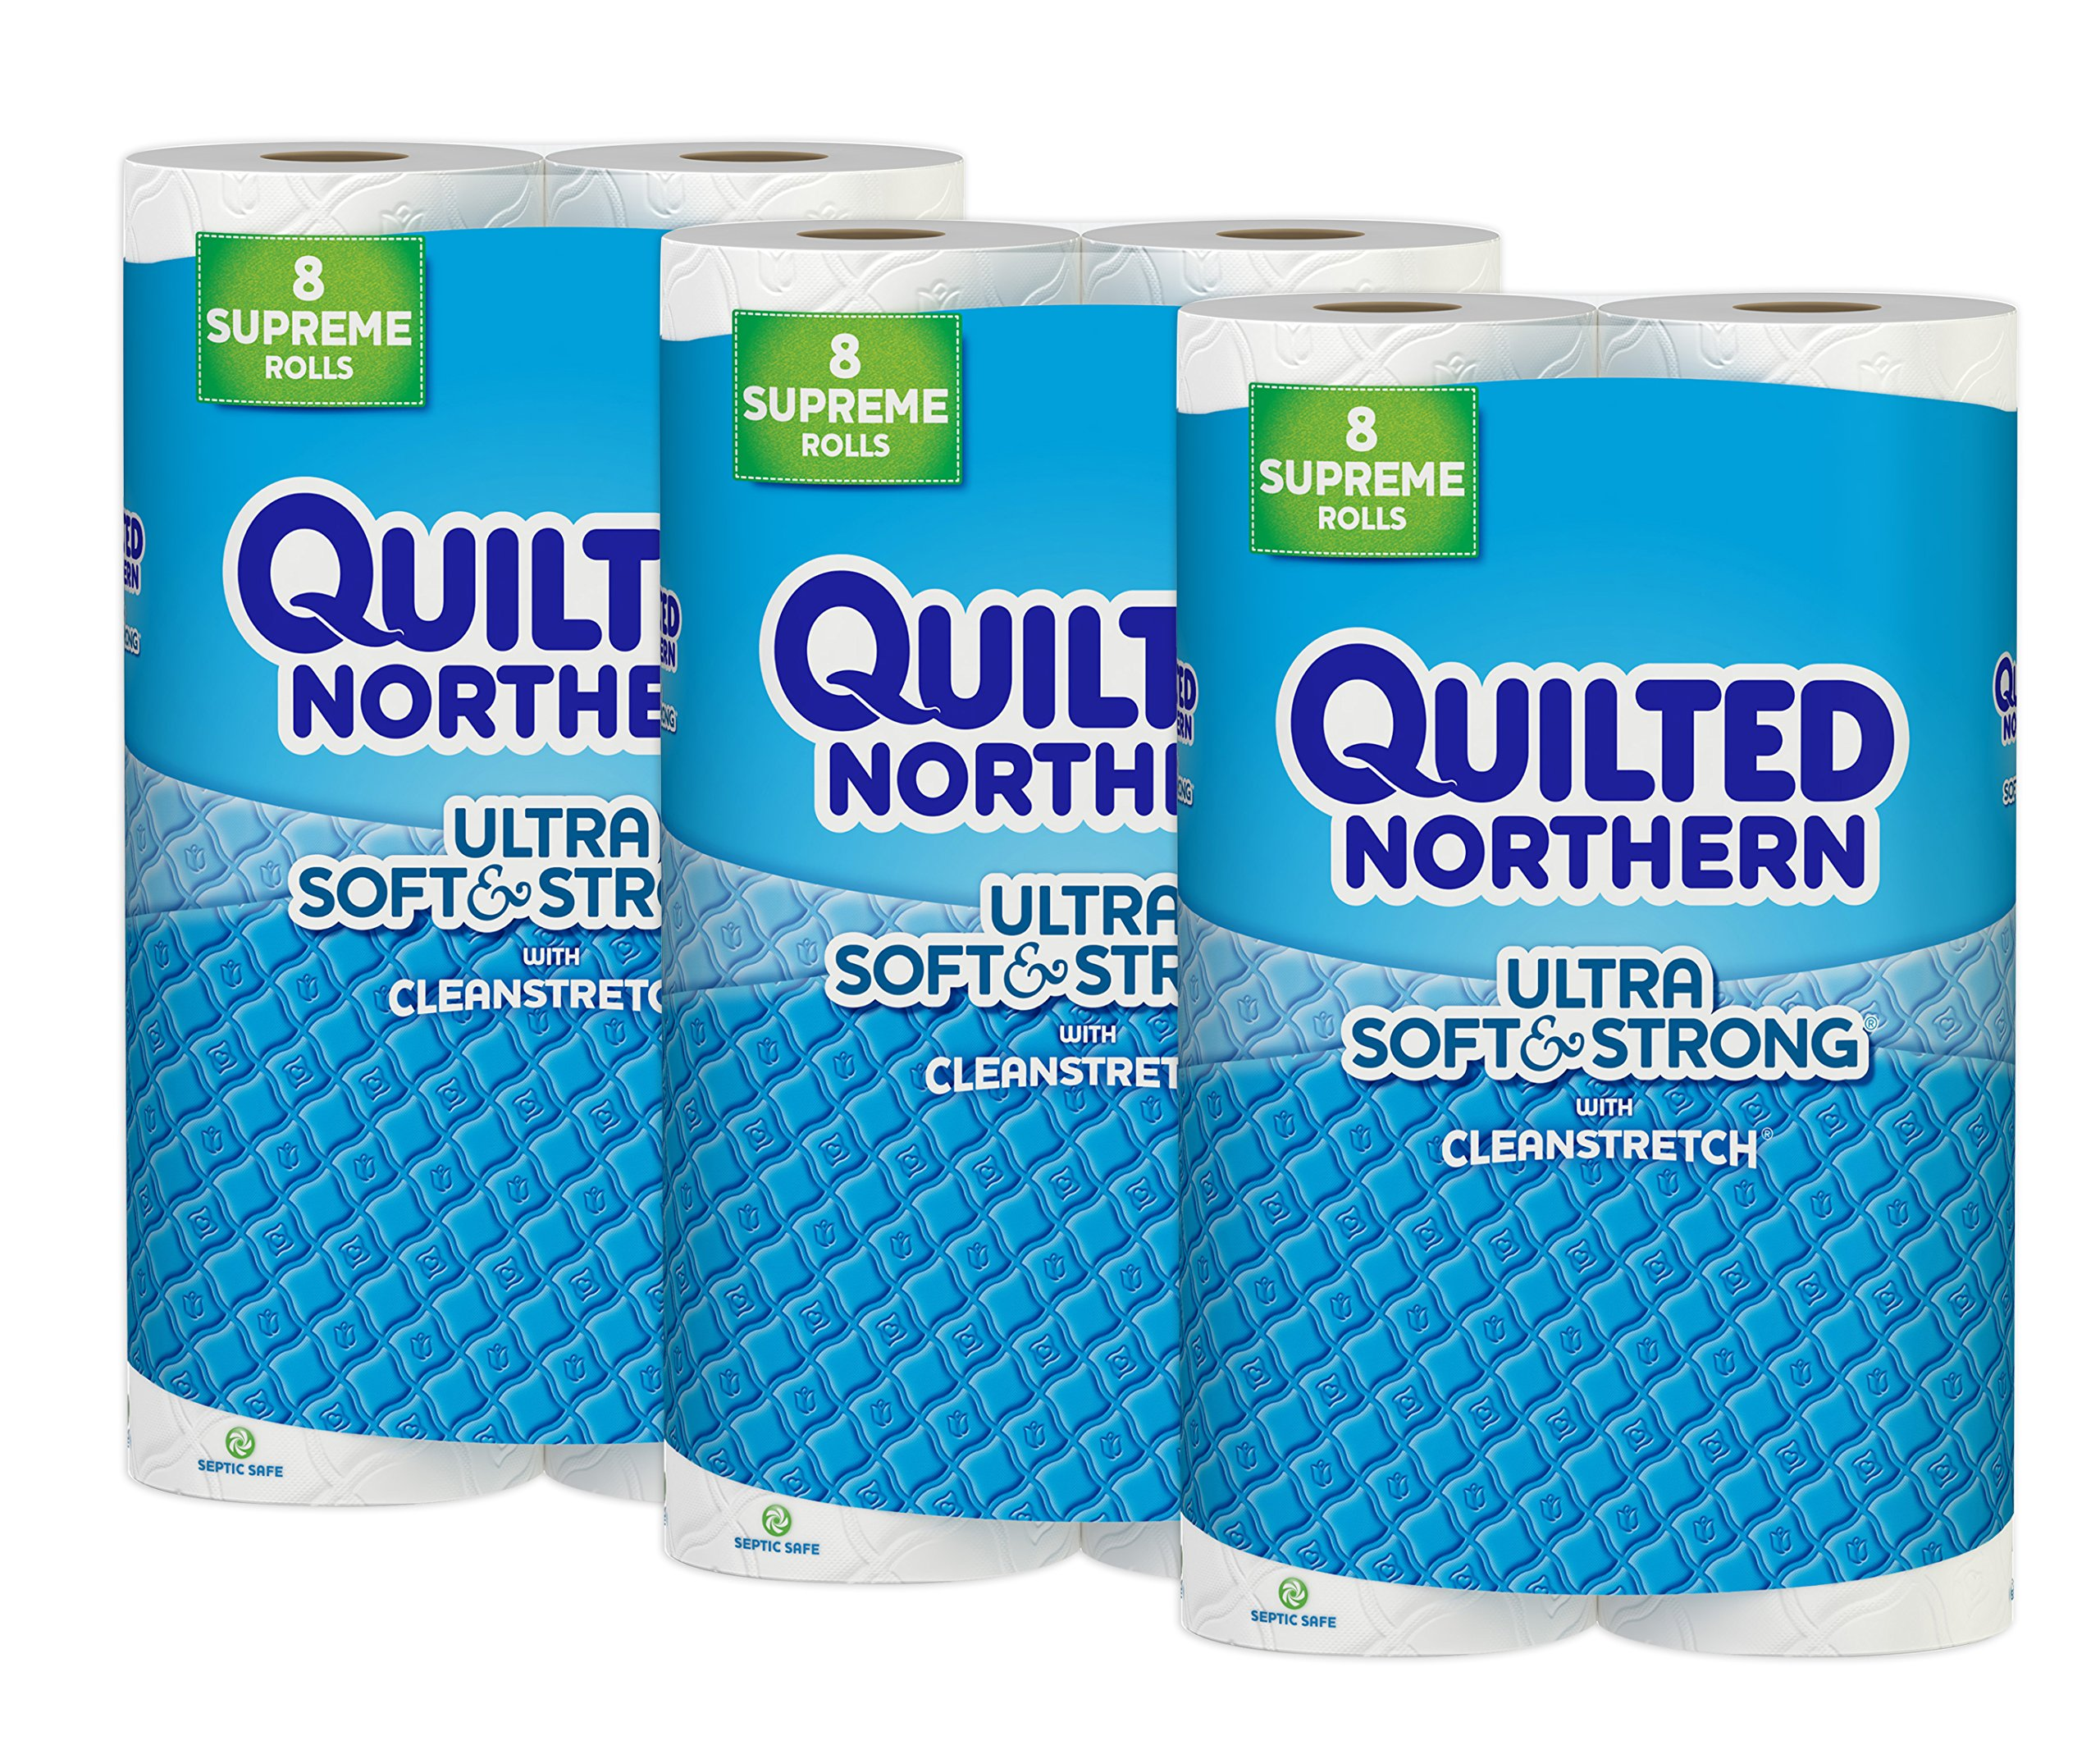 Quilted Northern Ultra Soft Amp Strong Supreme Toilet Paper